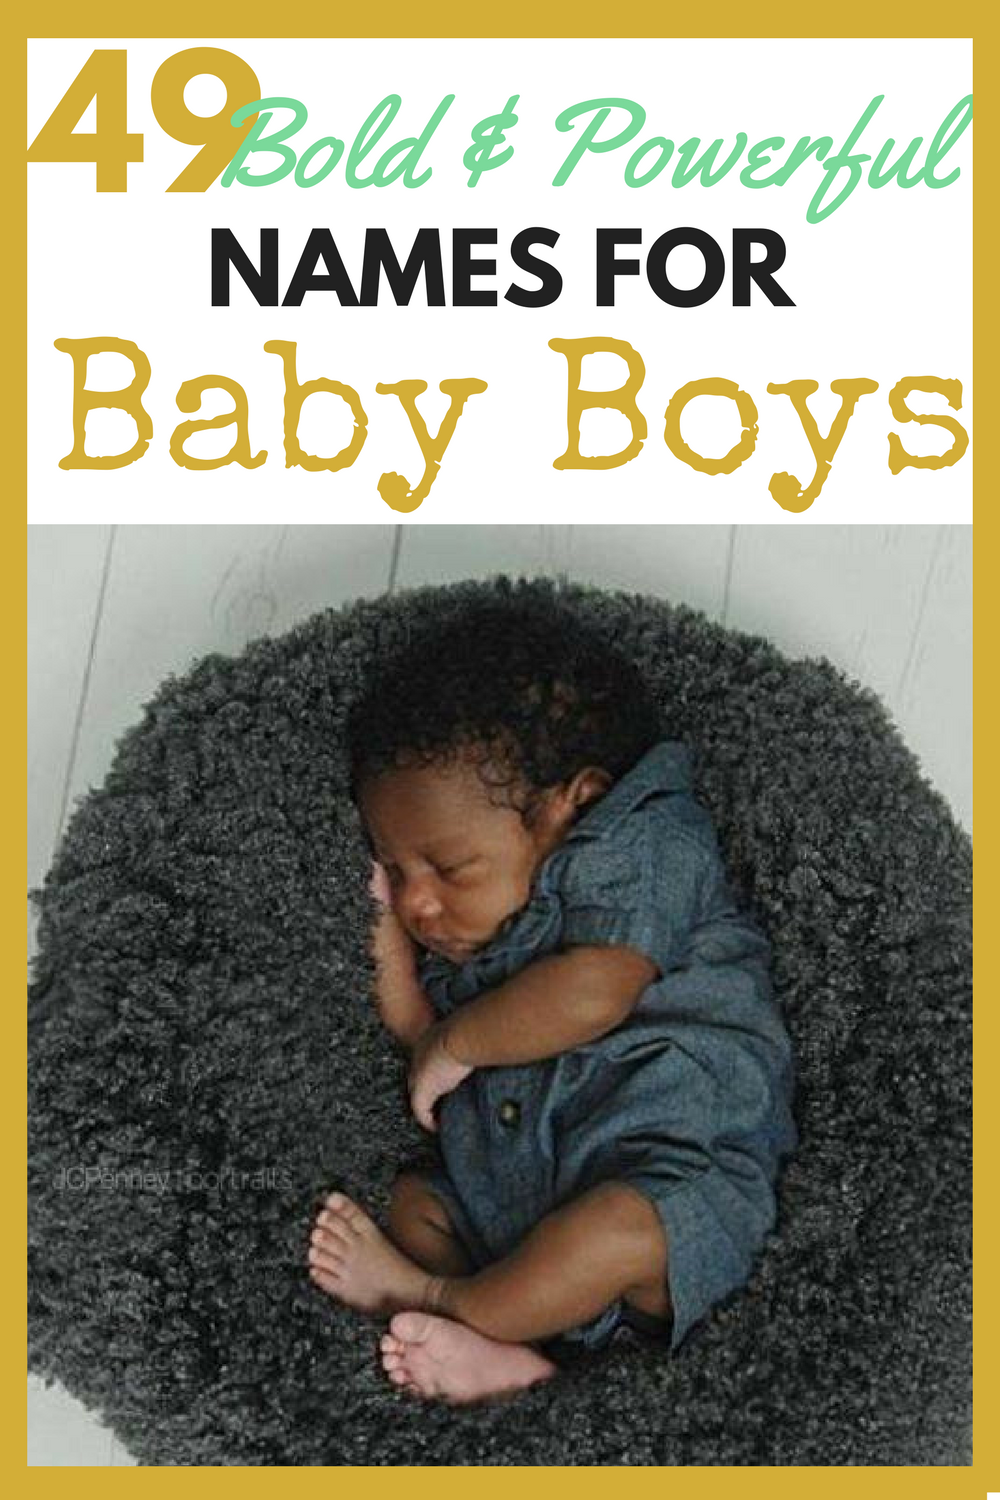 Choosing Baby Boy Names Seemed To Be Very Difficult For My Husband And I What We Both Understood Was That Wanted A Name Stoic Bold